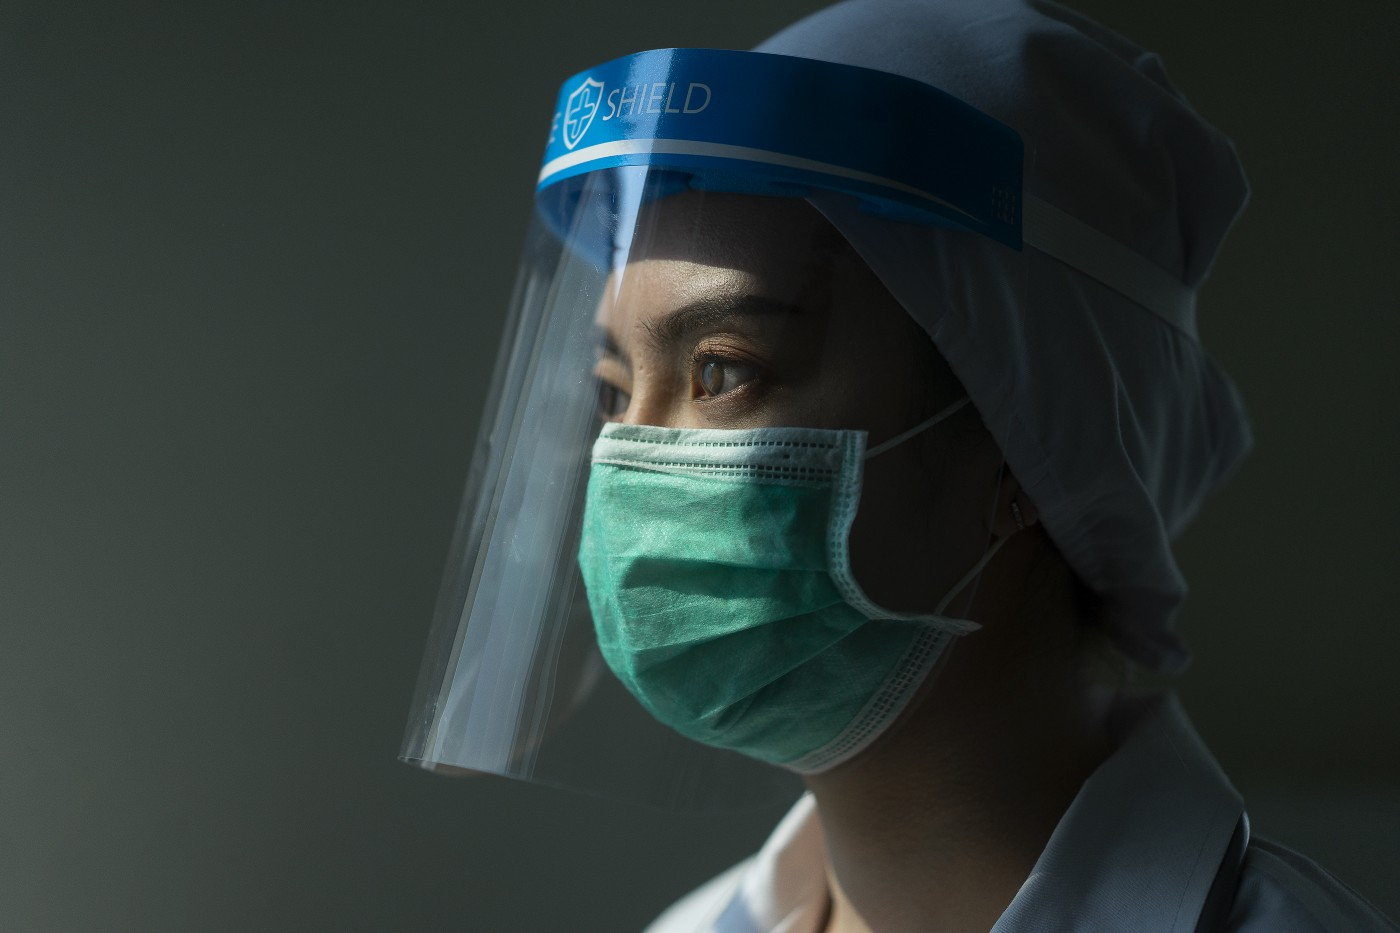 Healthcare worker wearing PPE.